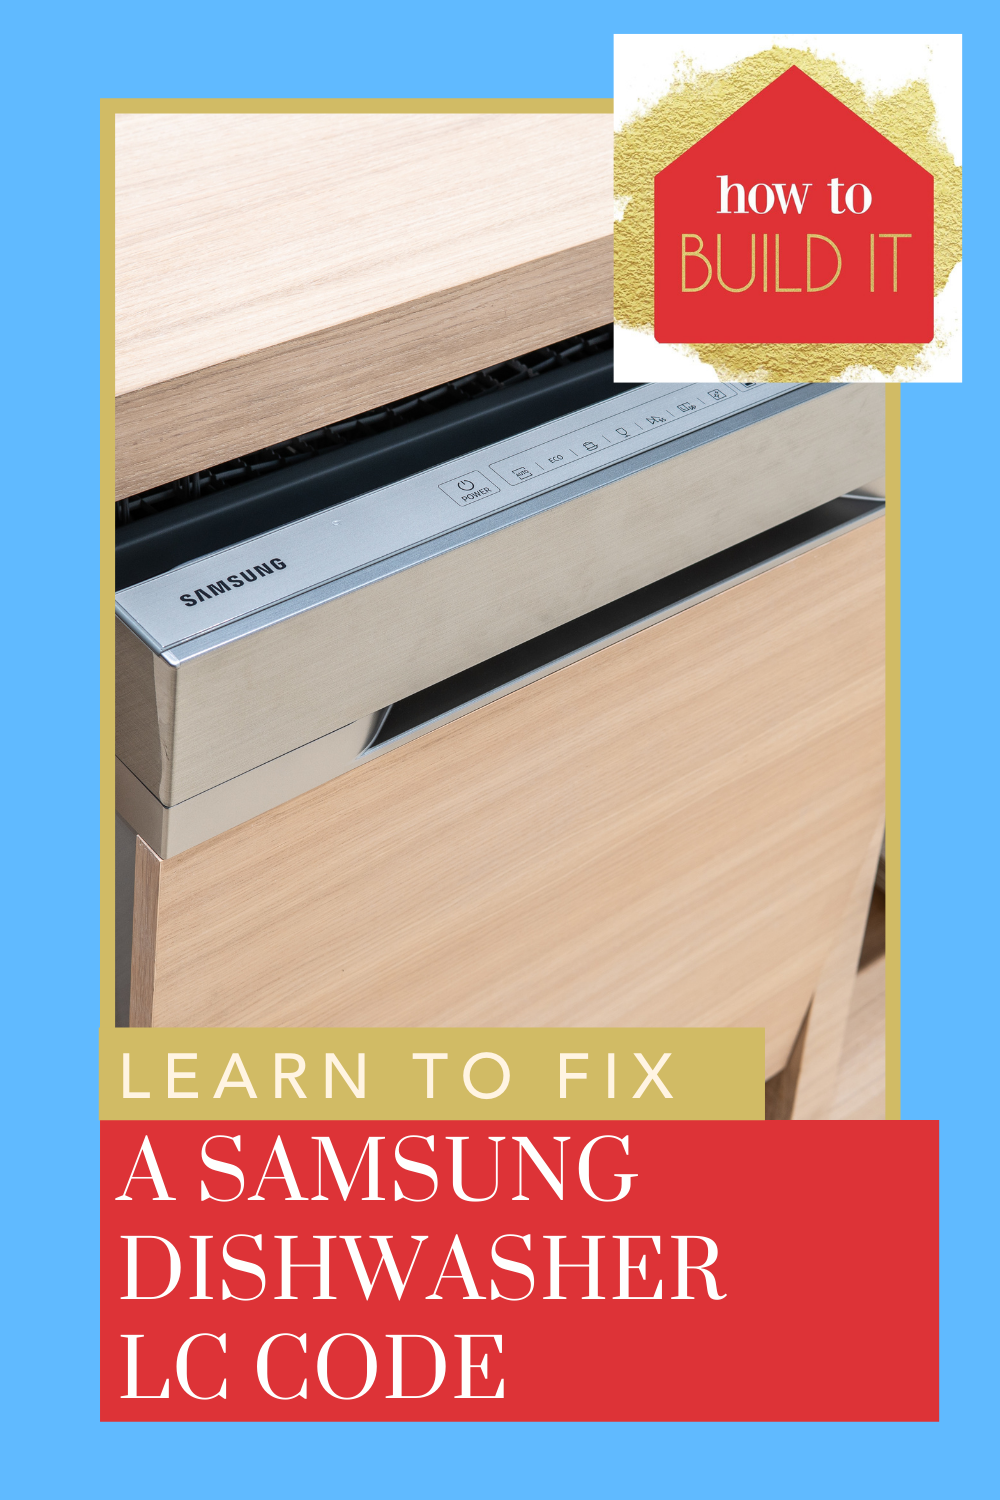 Howtobuildit.org has all of the best in home improvement and maintenance. Keep your home appliances in check all of the time. Find out now how you can fix your Samsung dishwasher LC code after moisture detection.